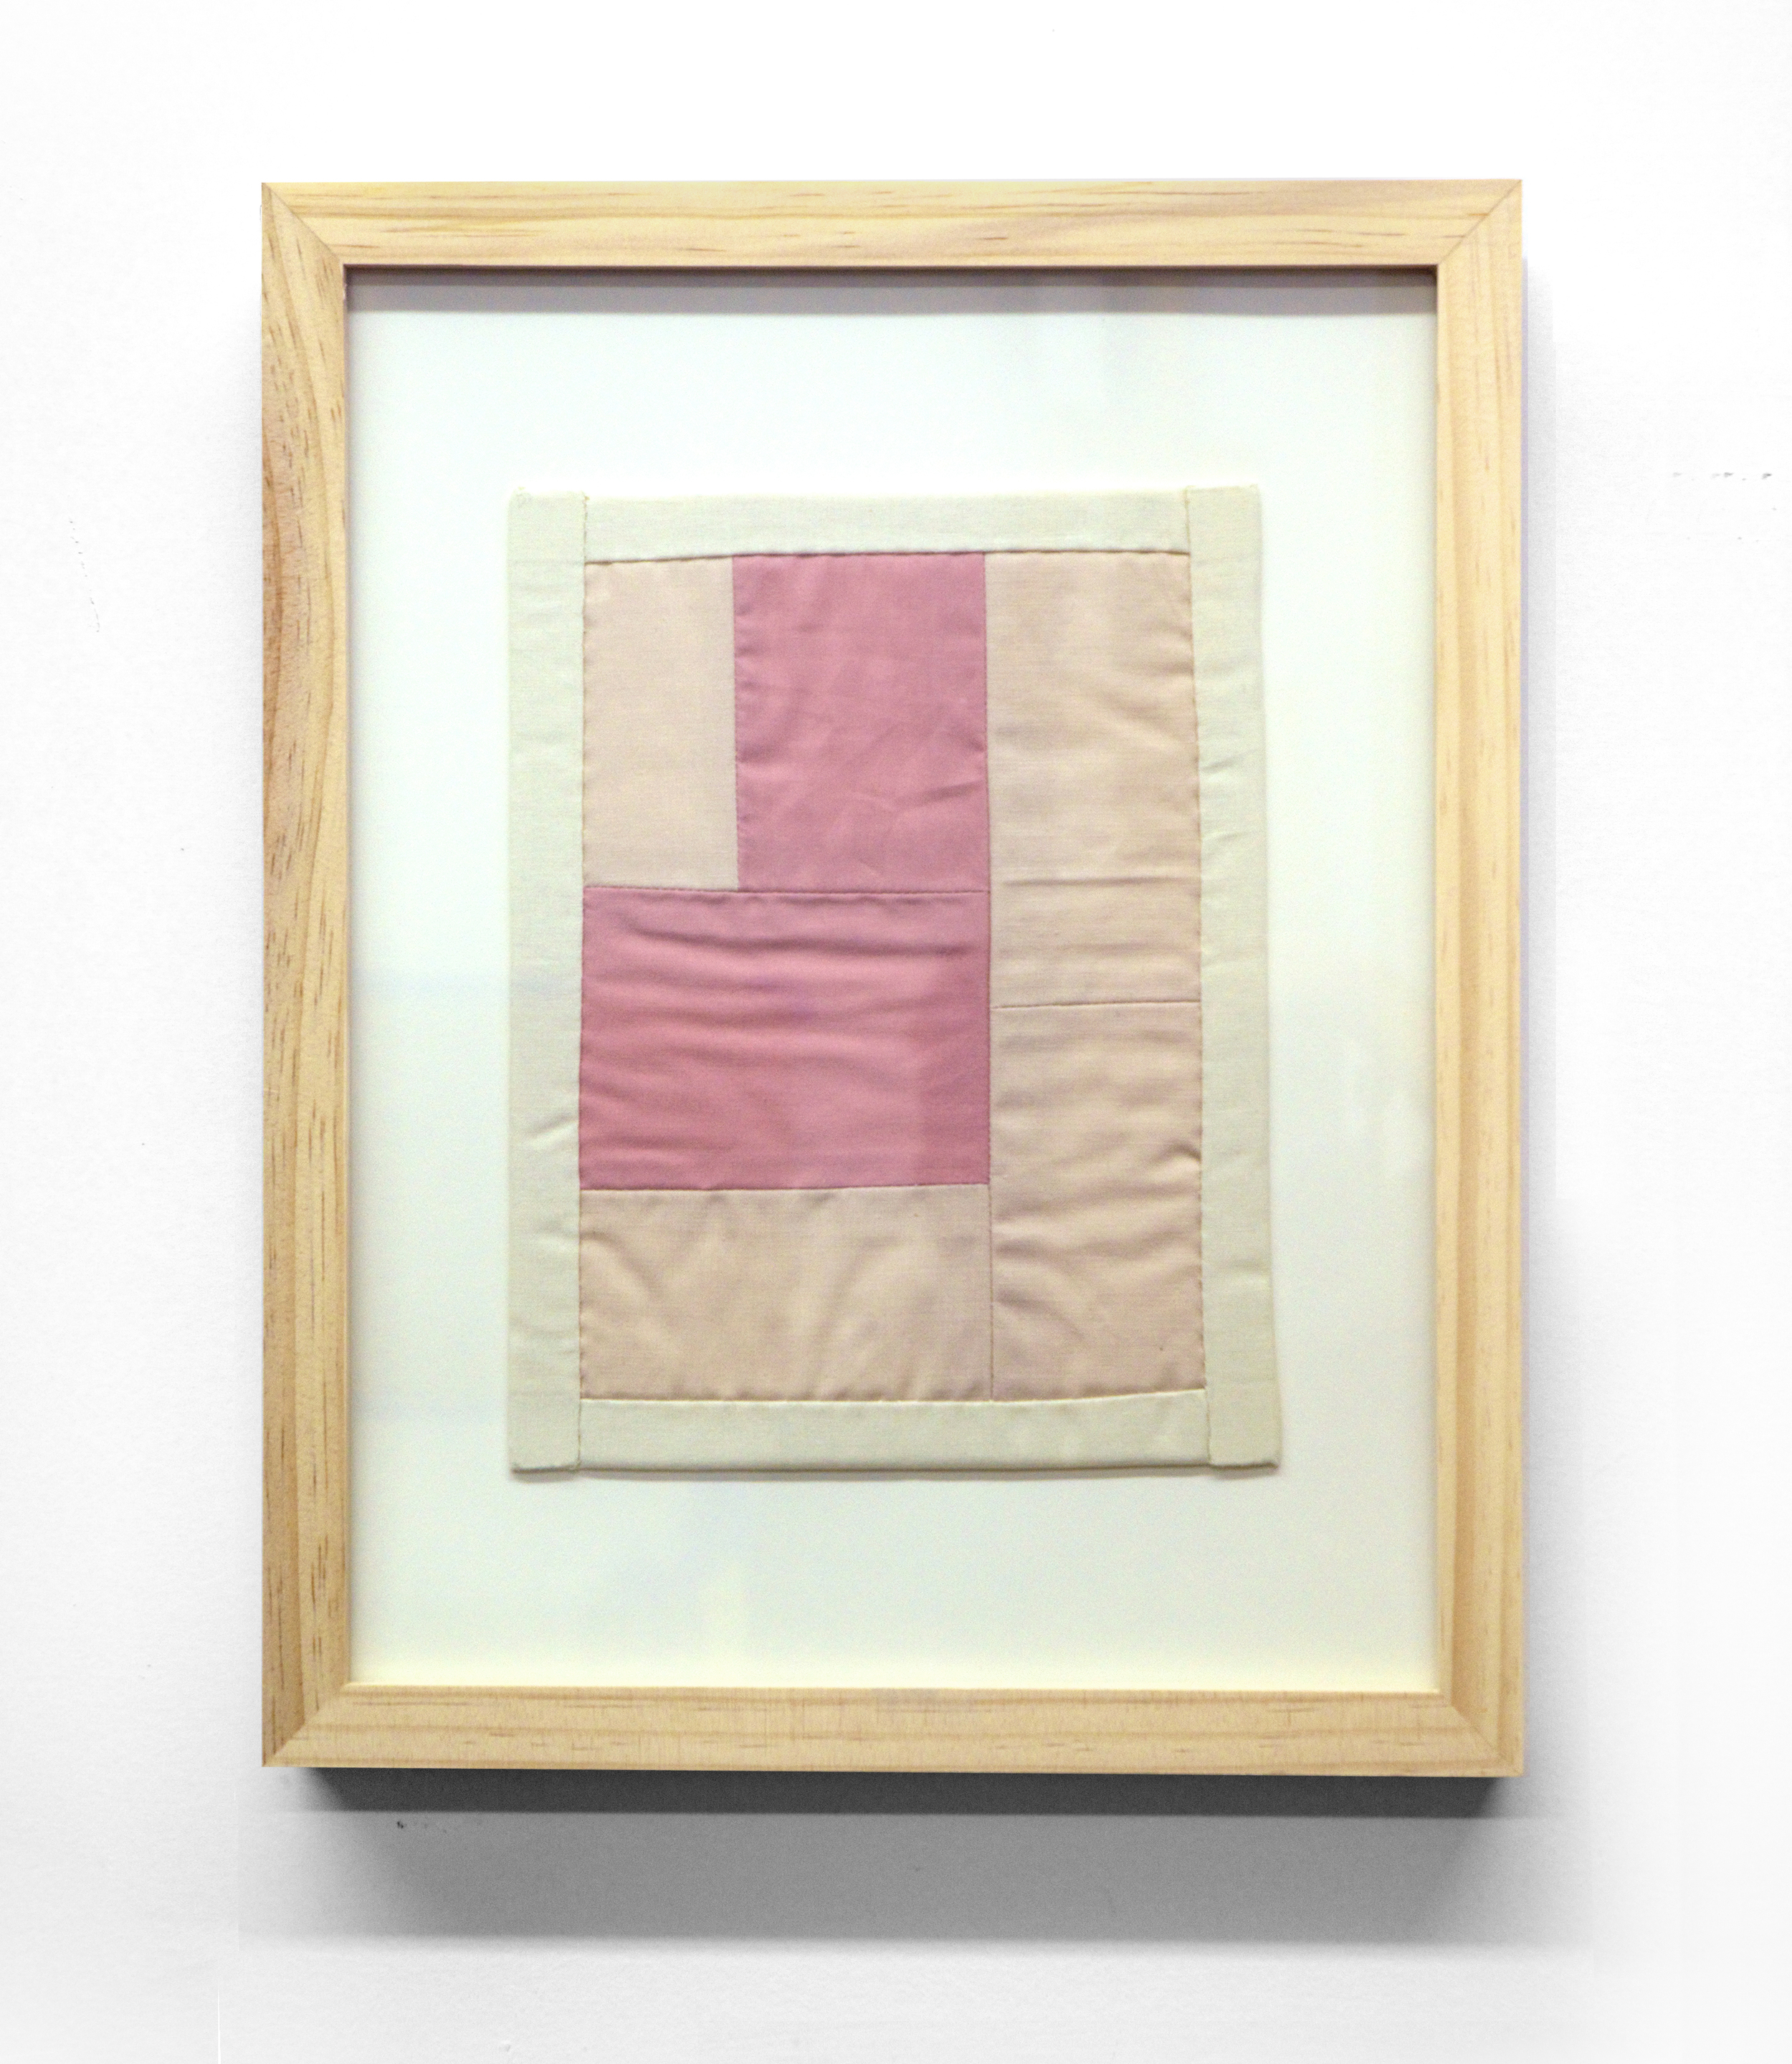 MINI (PINK) cotton quilt and frame   11 x 14 inches,   2014